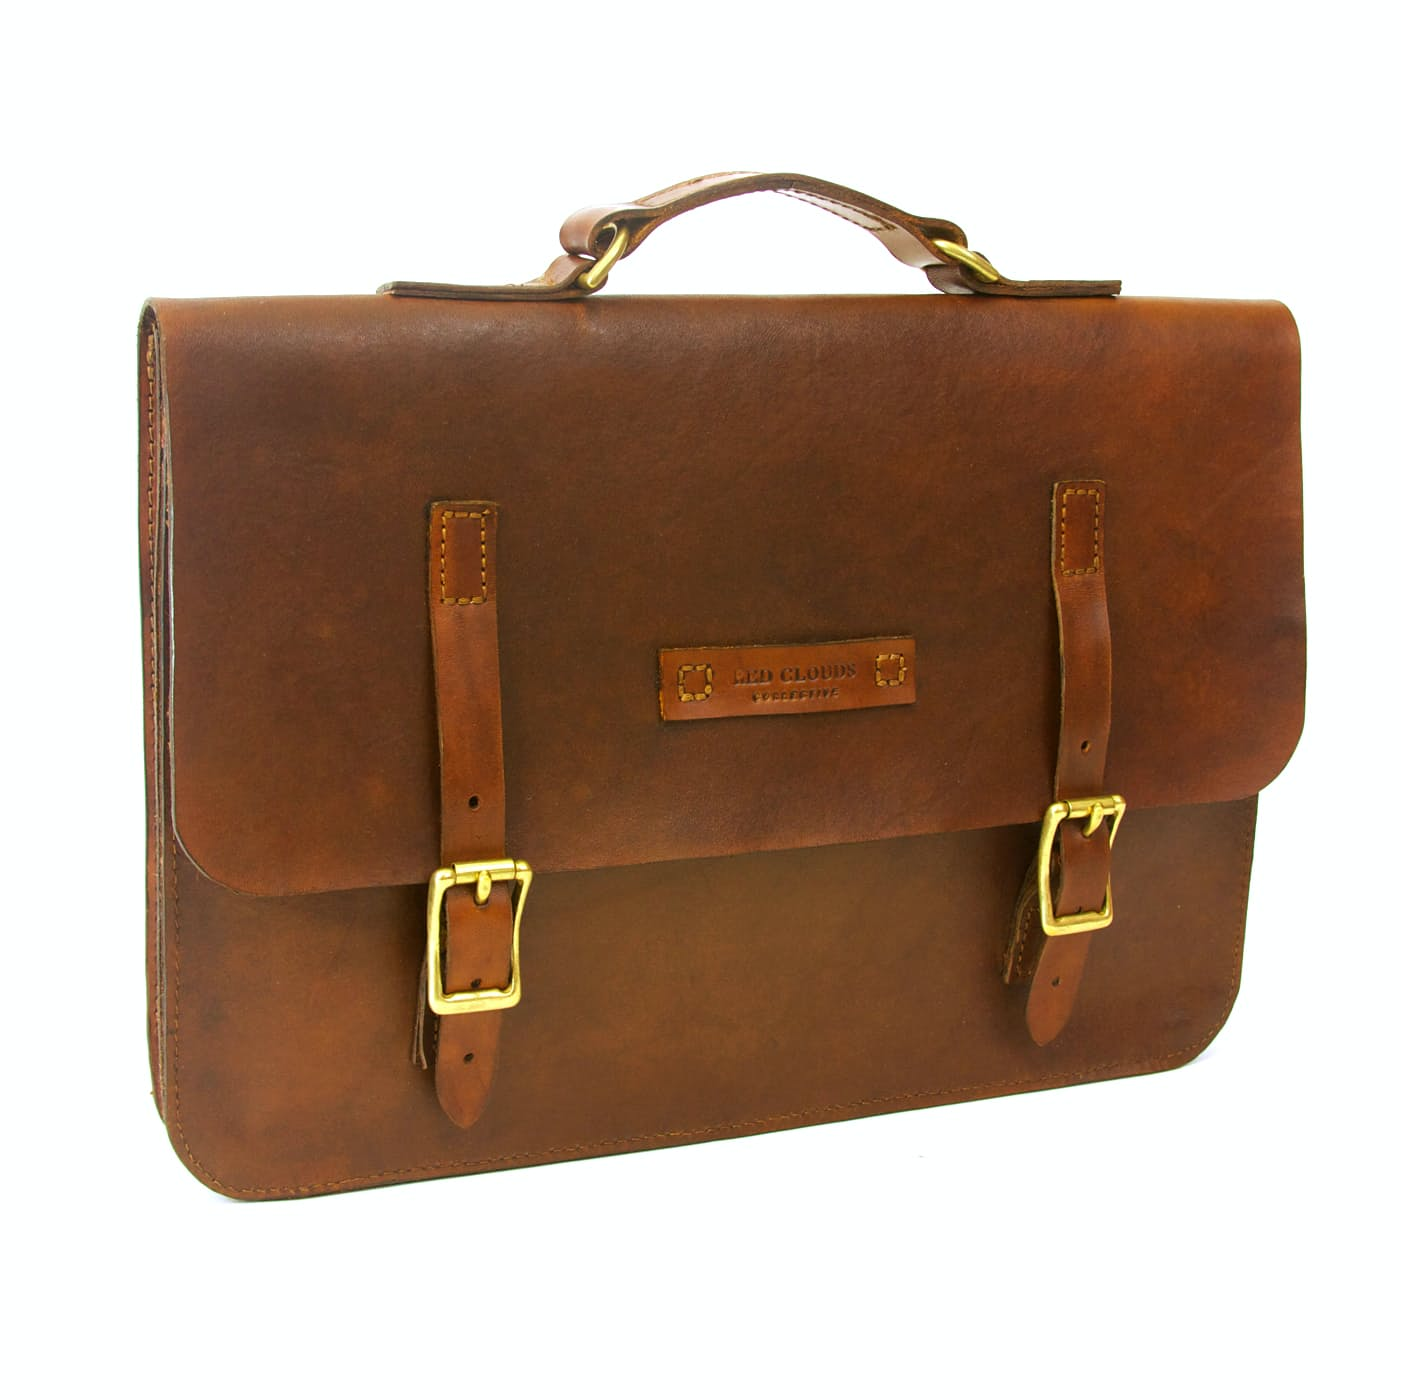 Erlequvxjy red clouds collective leather briefcase 0 original